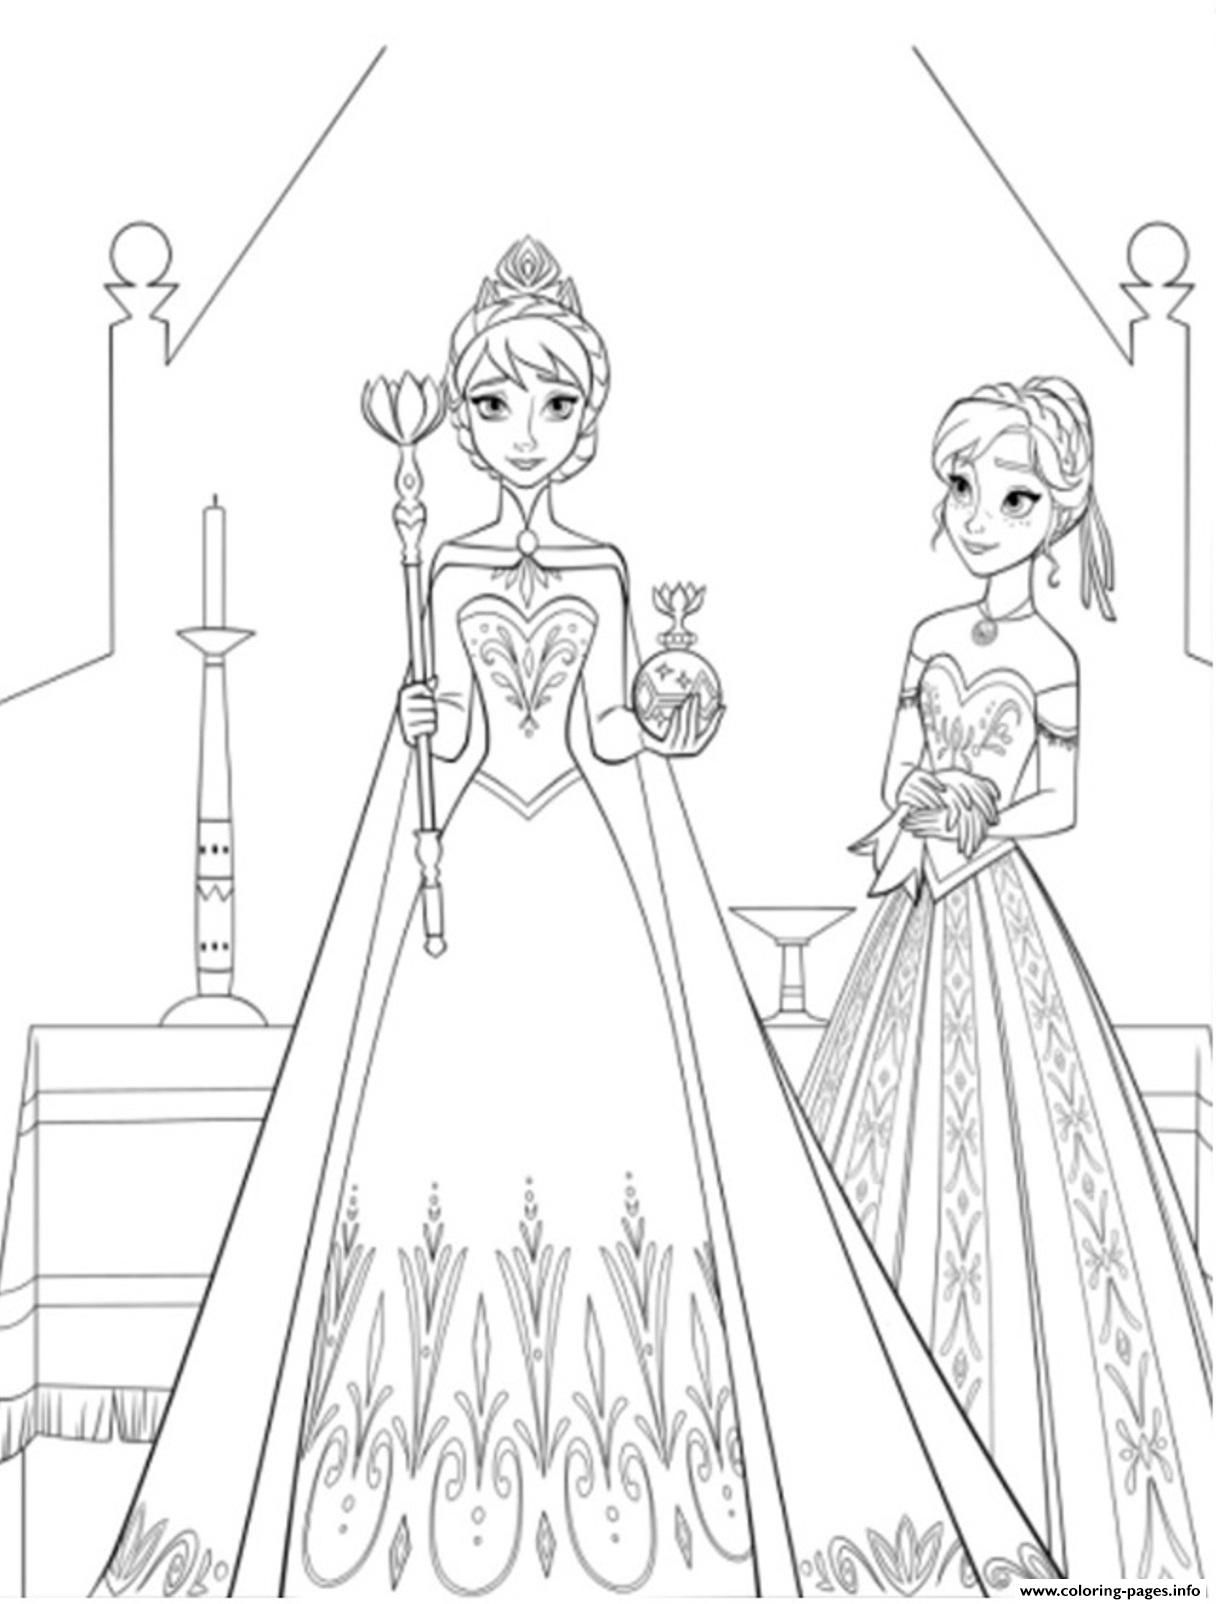 Print Coloring Page Free Frozen Disney6da1 Coloring Pages